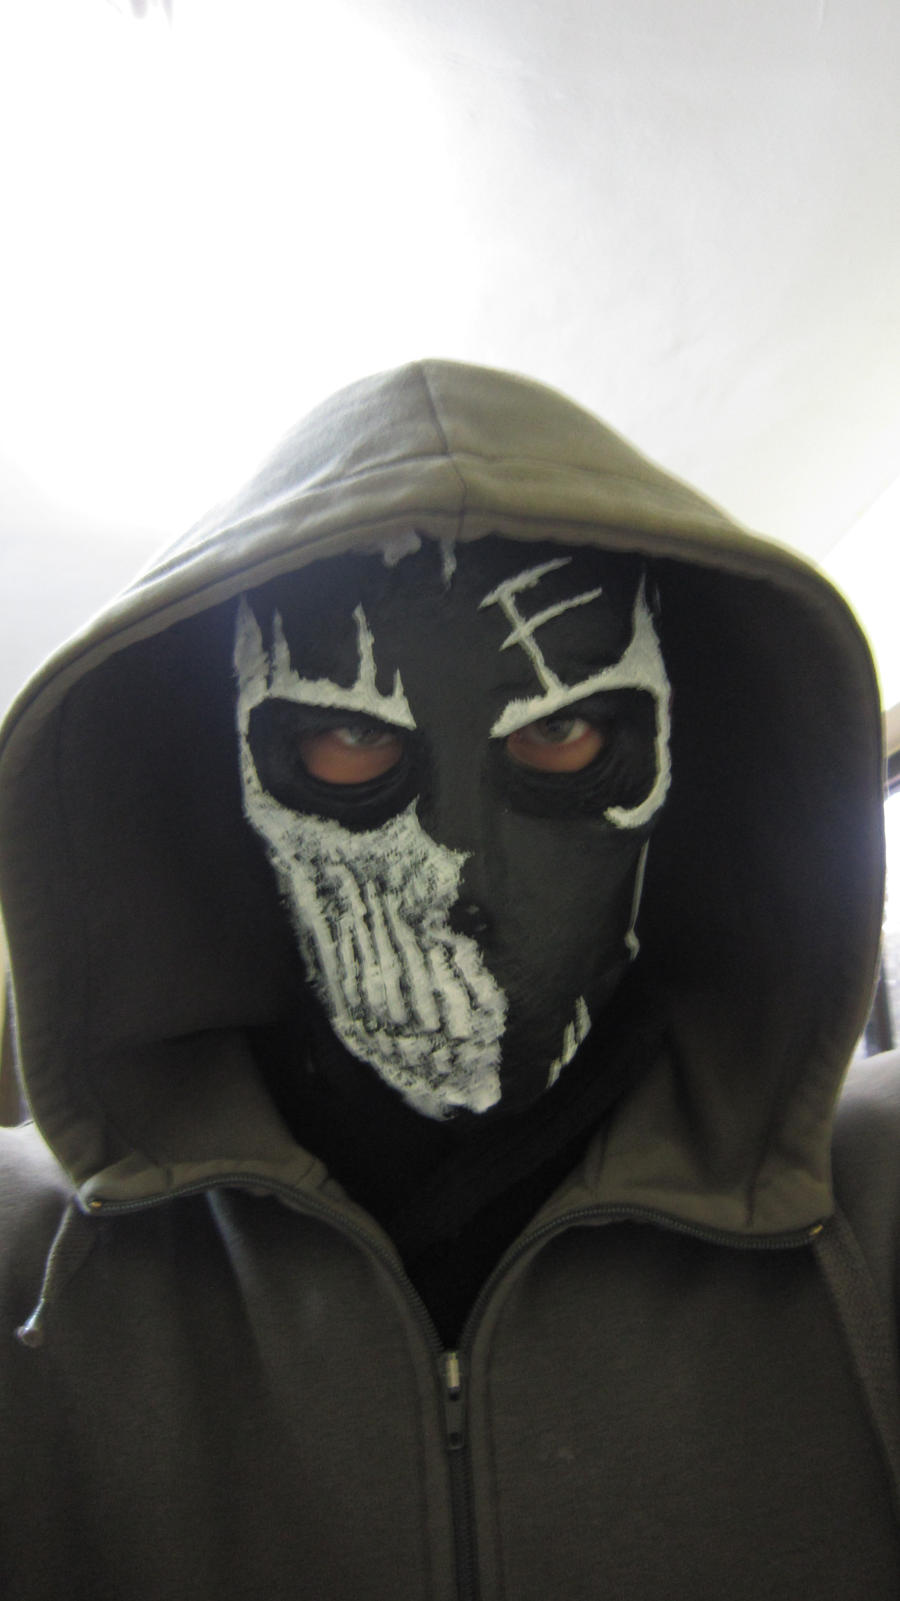 Army Of Two Mask by Psychopat6666 on DeviantArt